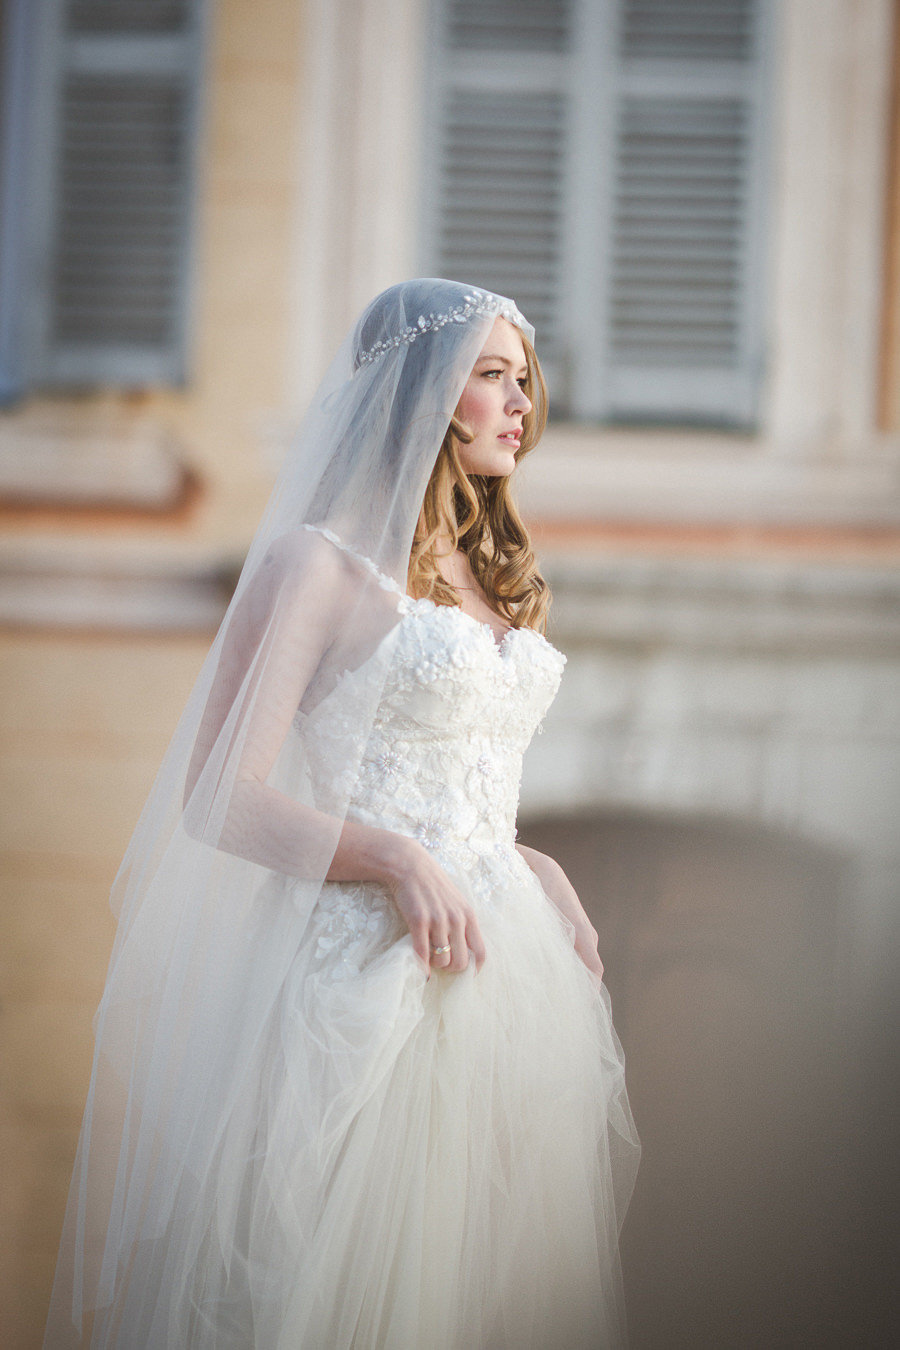 Marguerite_silk_tulle_ballerina_wedding_dress_JoanneFlemingDesign_ToneTvedtFoto